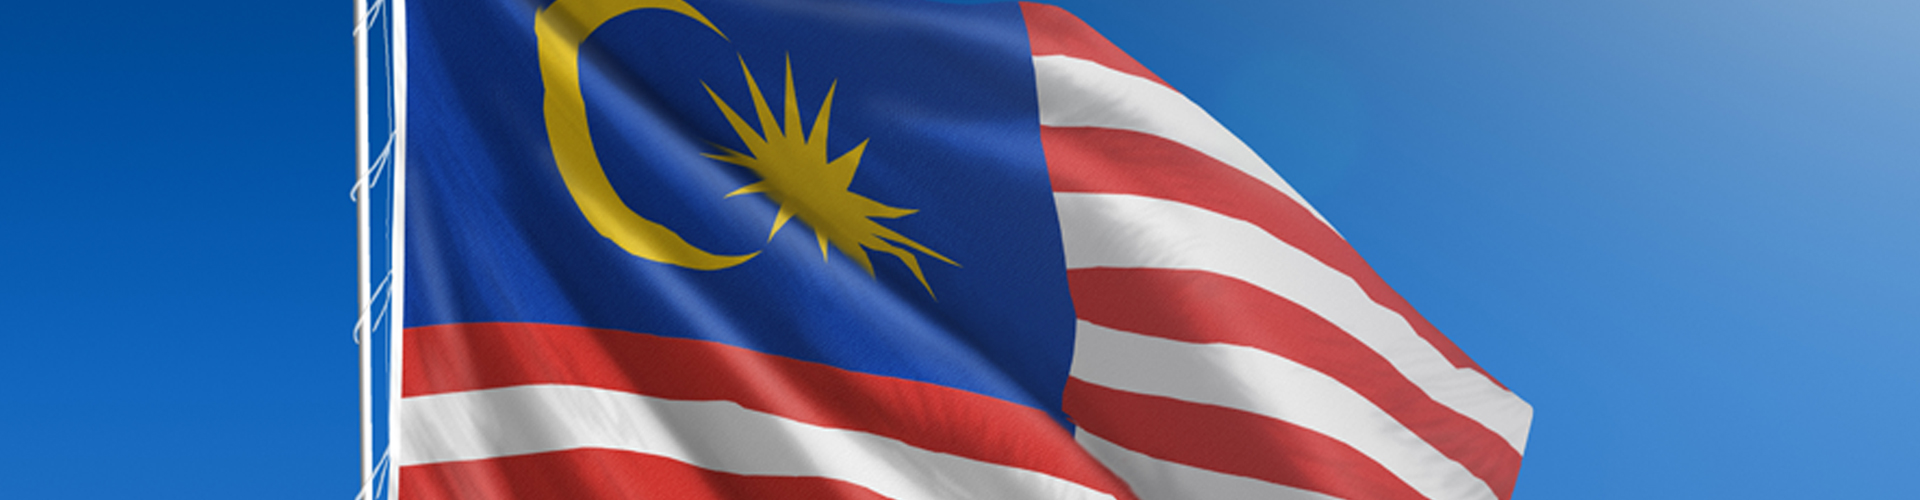 The National flag of Malaysia blowing in the wind in front of a clear blue sky